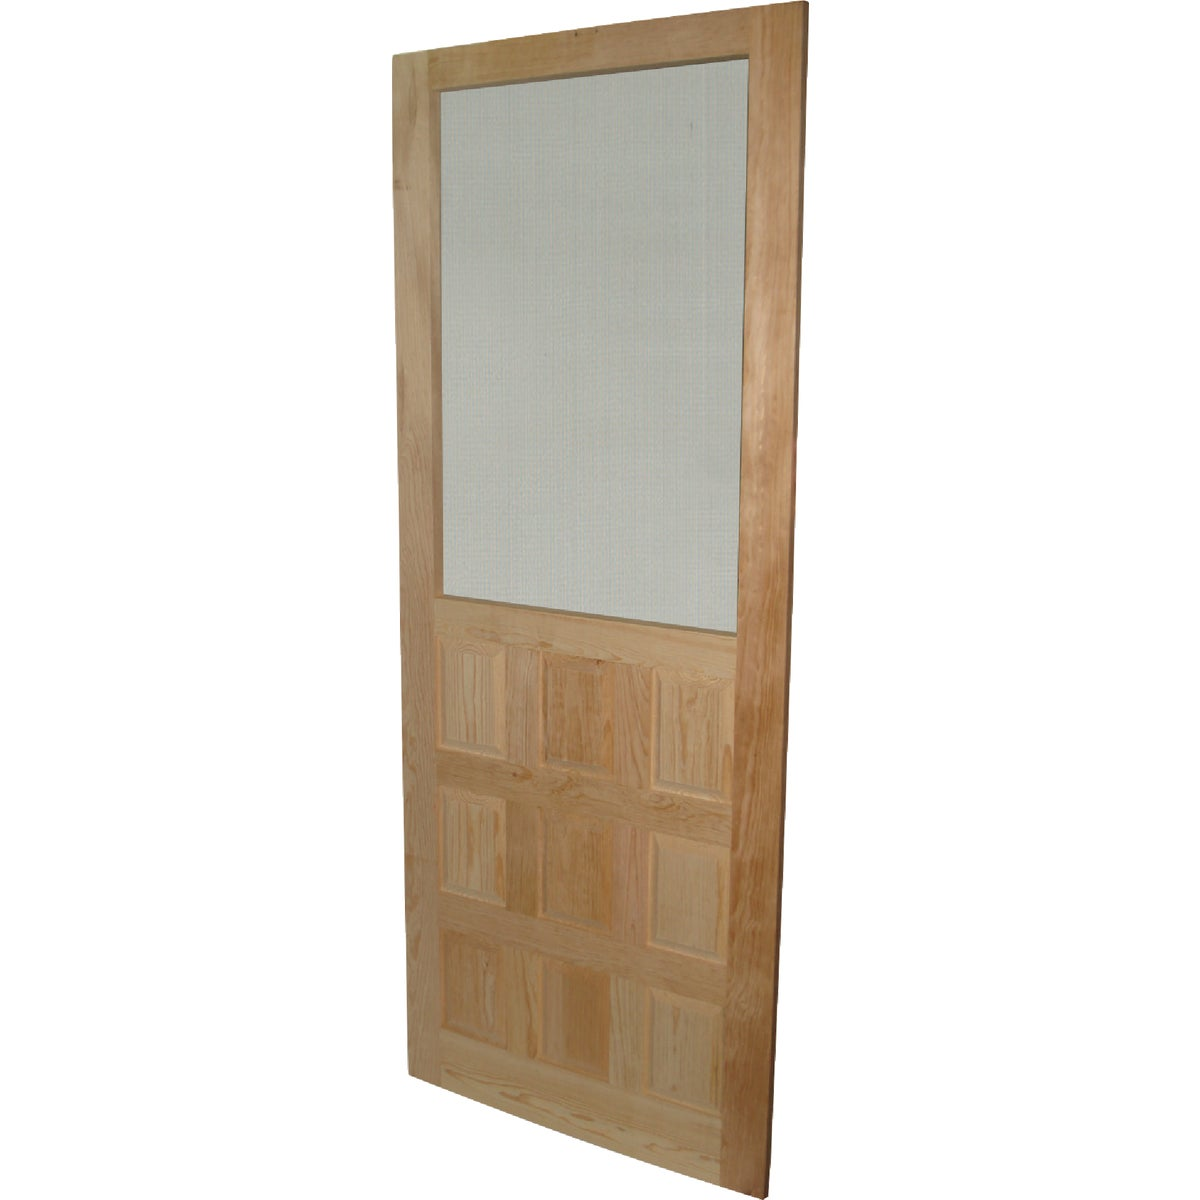 "36"" RP SCREEN DOOR - 3068RP by Wood Prod Manufactur"